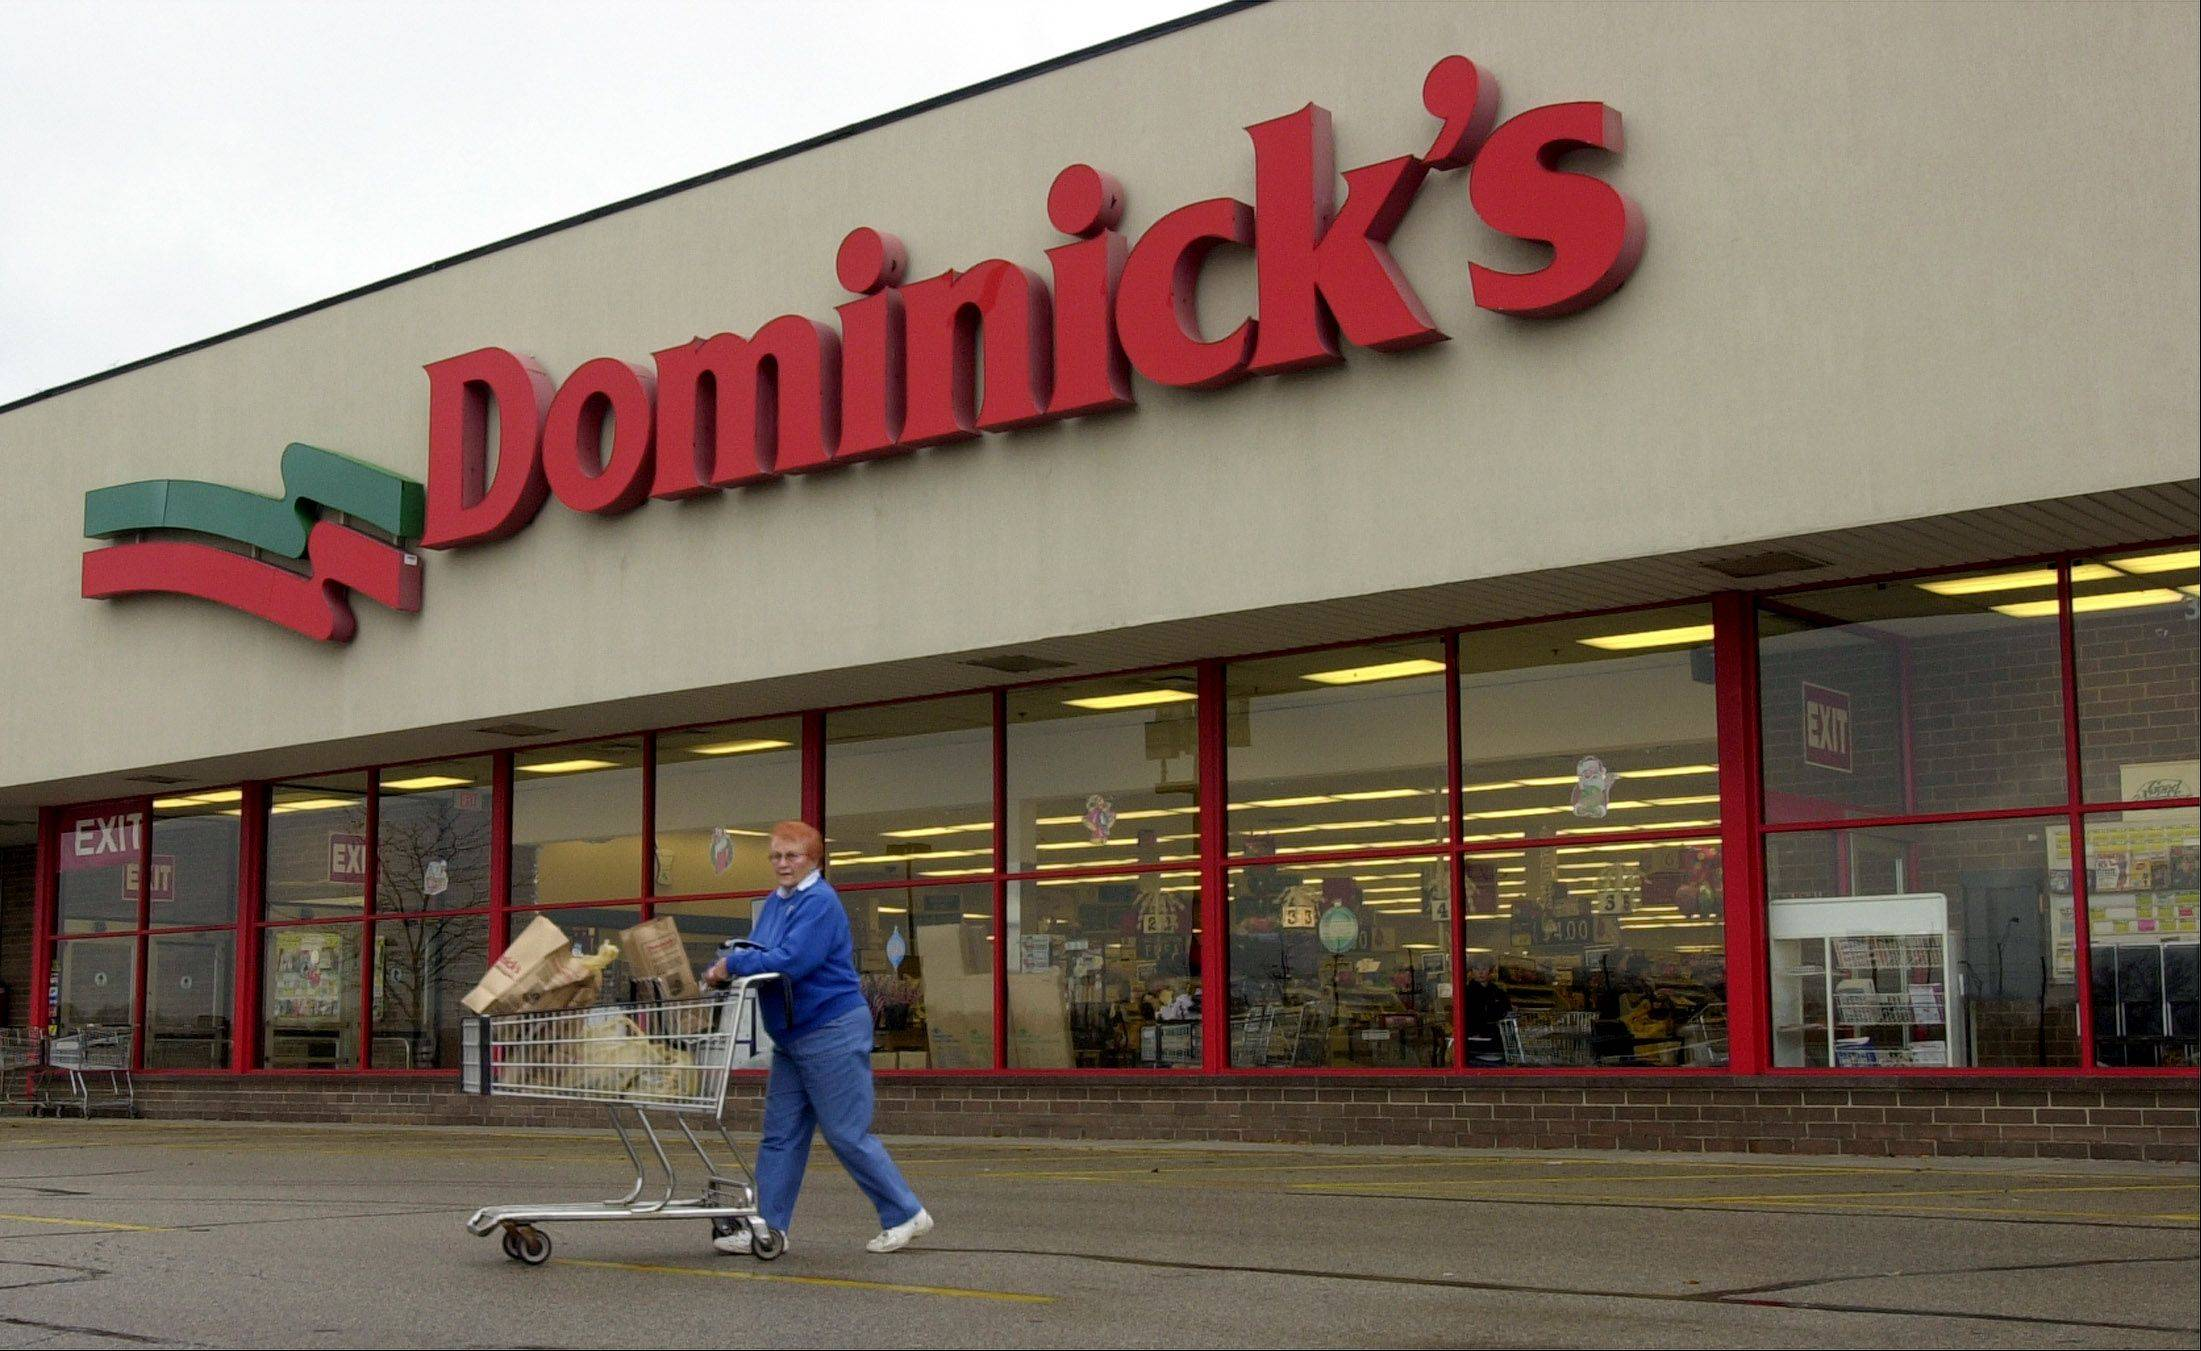 Safeway is the parent company of the Dominick's grocery store chain.